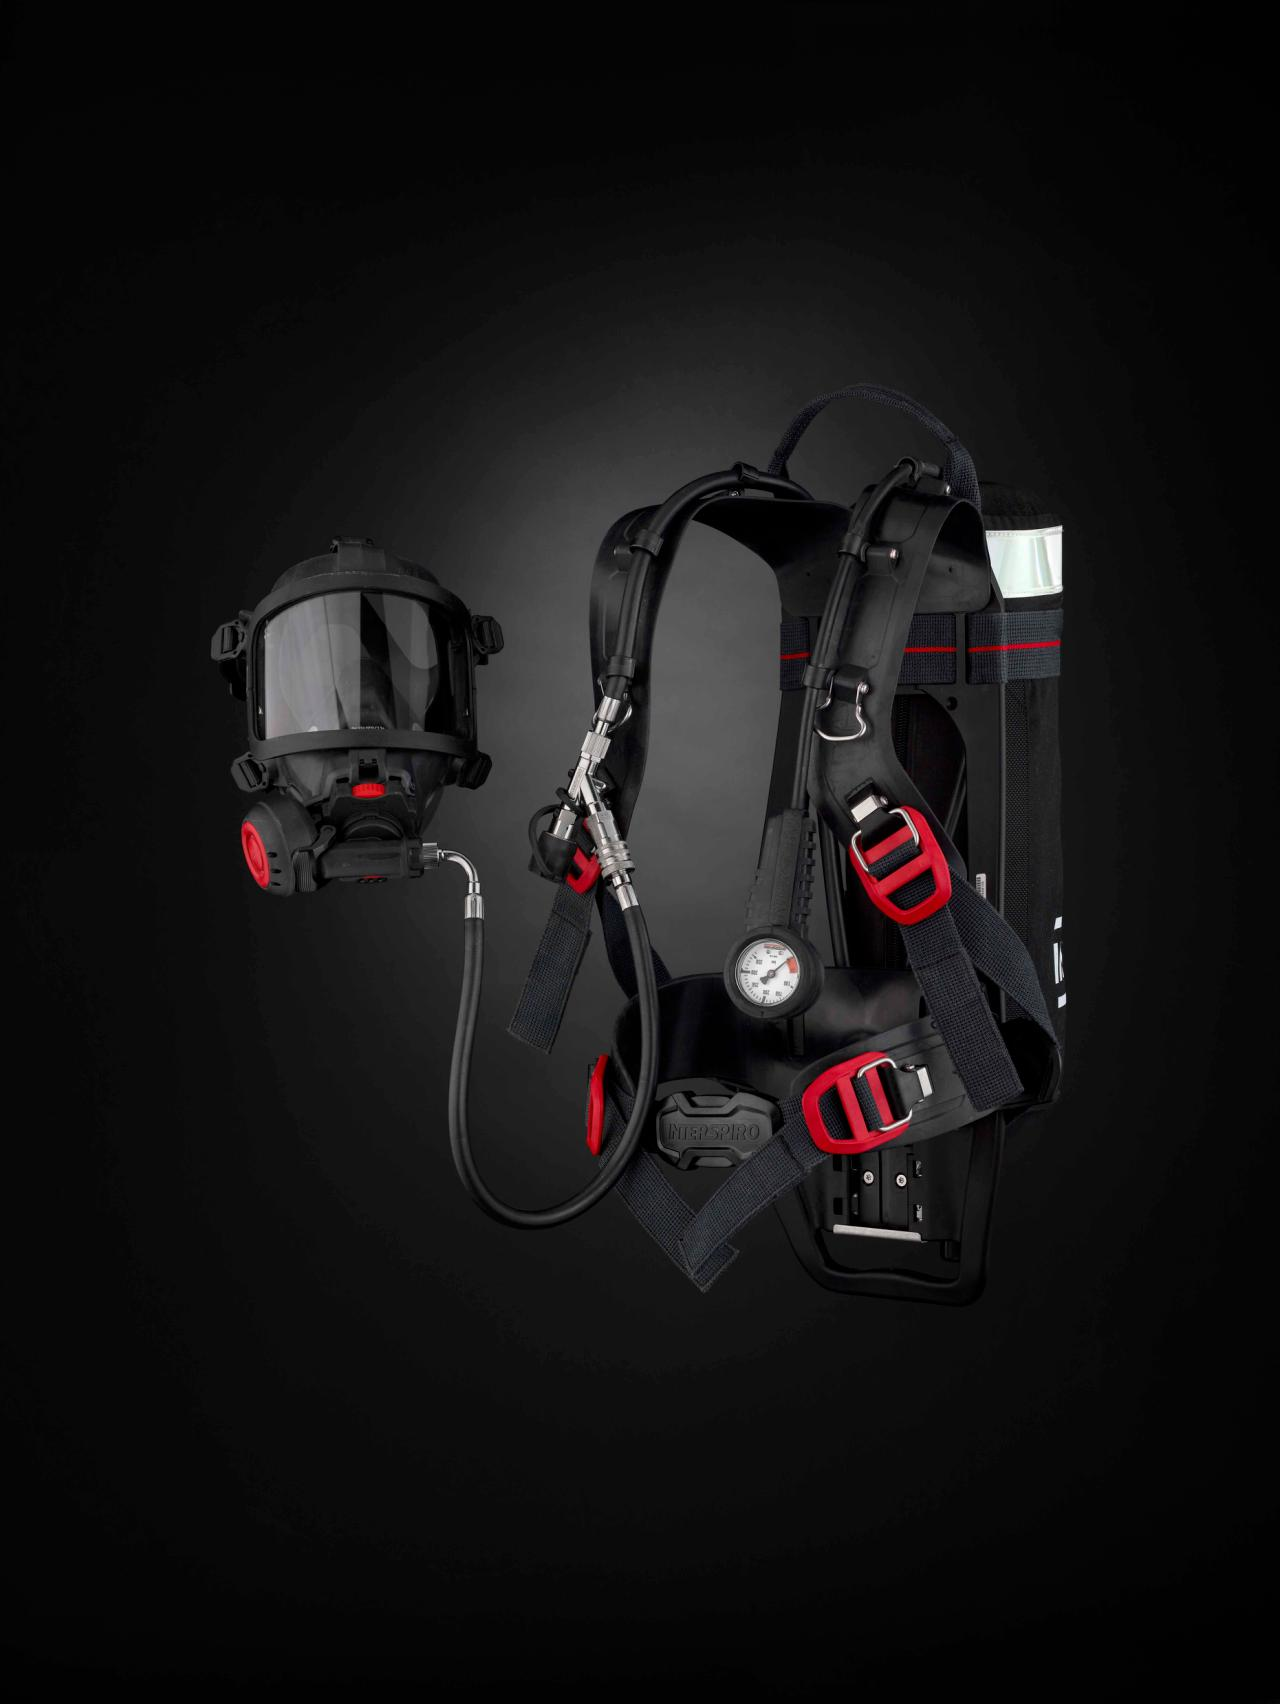 Presentational product images - Respire Incurve SCBA